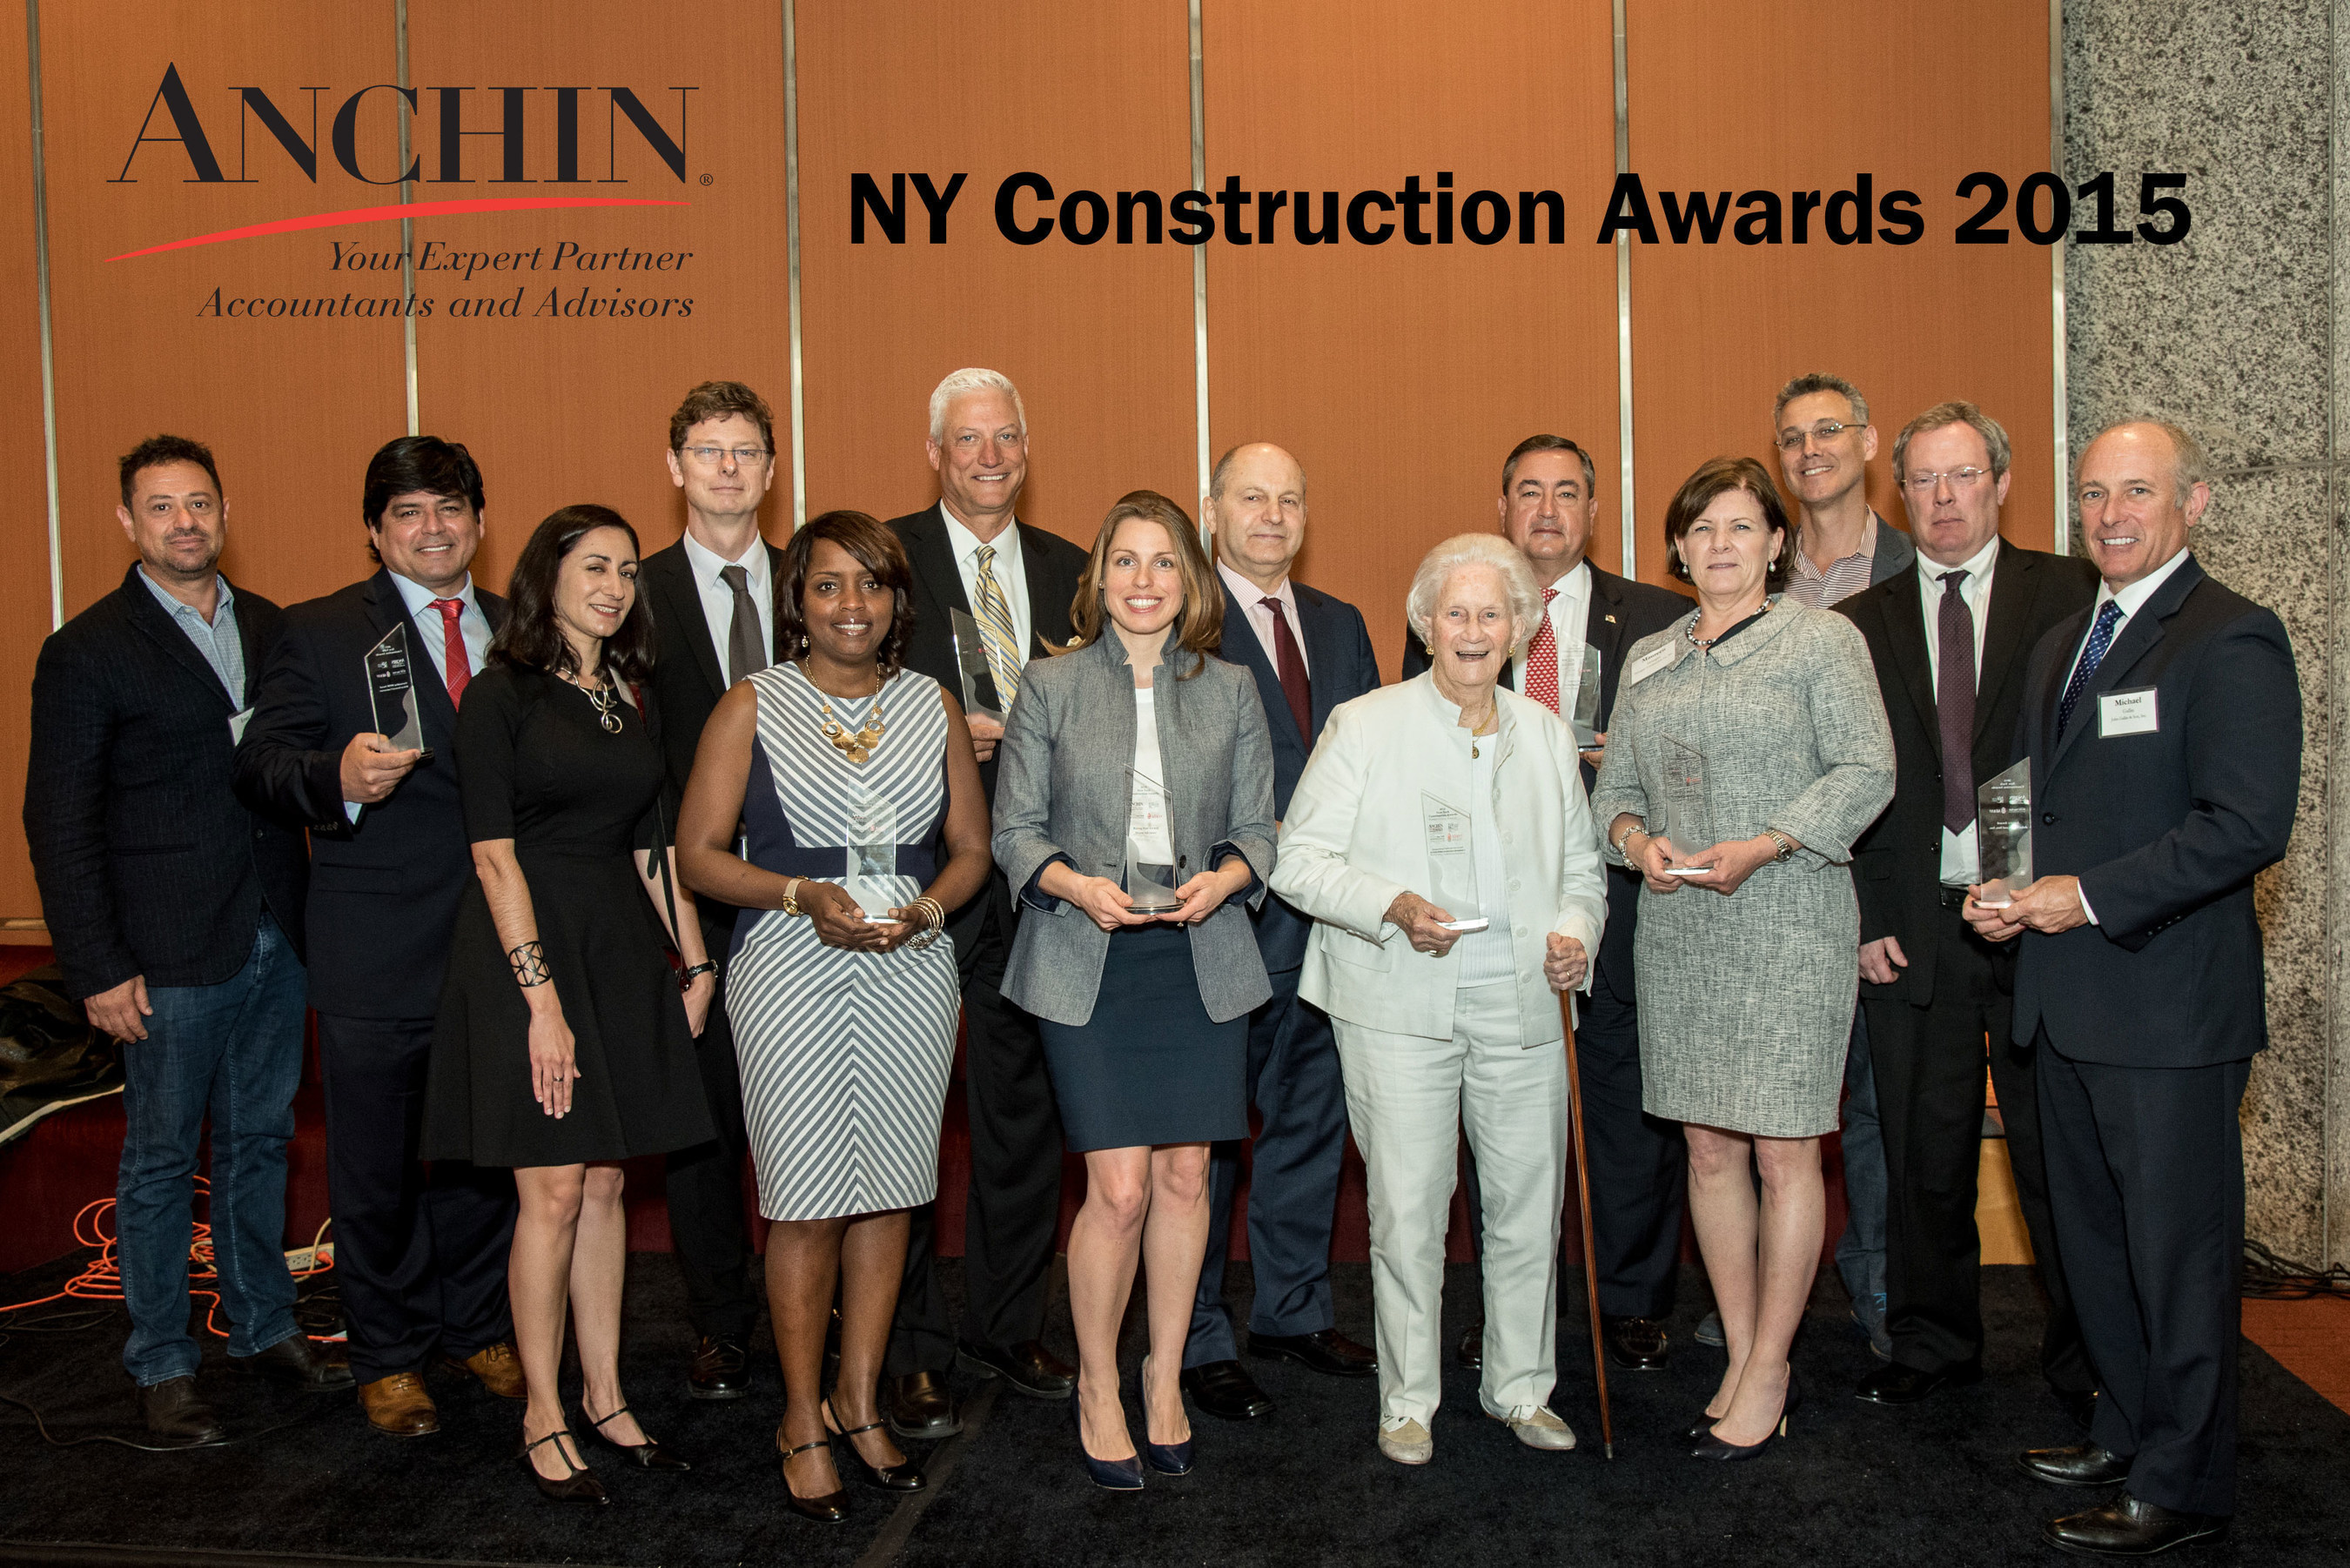 Anchin Block & Anchin 2015 New York Construction Awards - Winners Photo